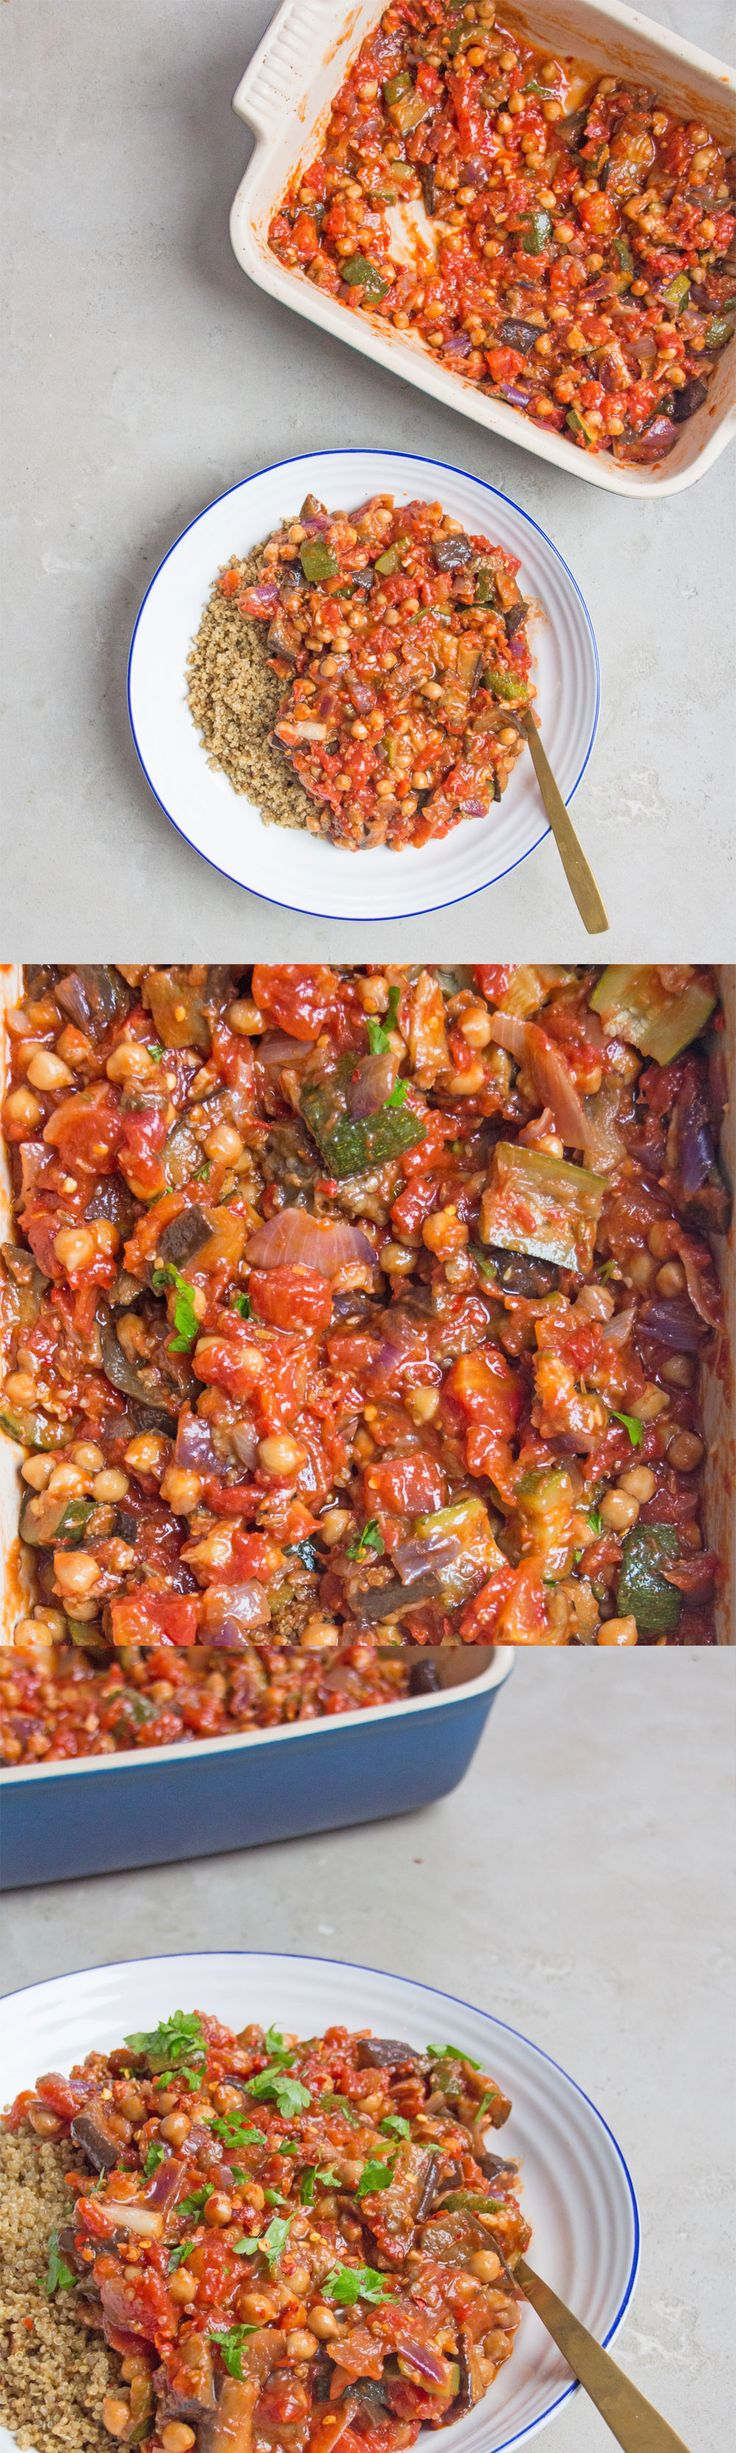 A simple roast veg and chickpea stew with courgette, aubergine, tomato, onion and garlic - such an easy way to get lots of veggies in to your meals! The leftovers for this are perfect for work the next day, and they freeze really well too.